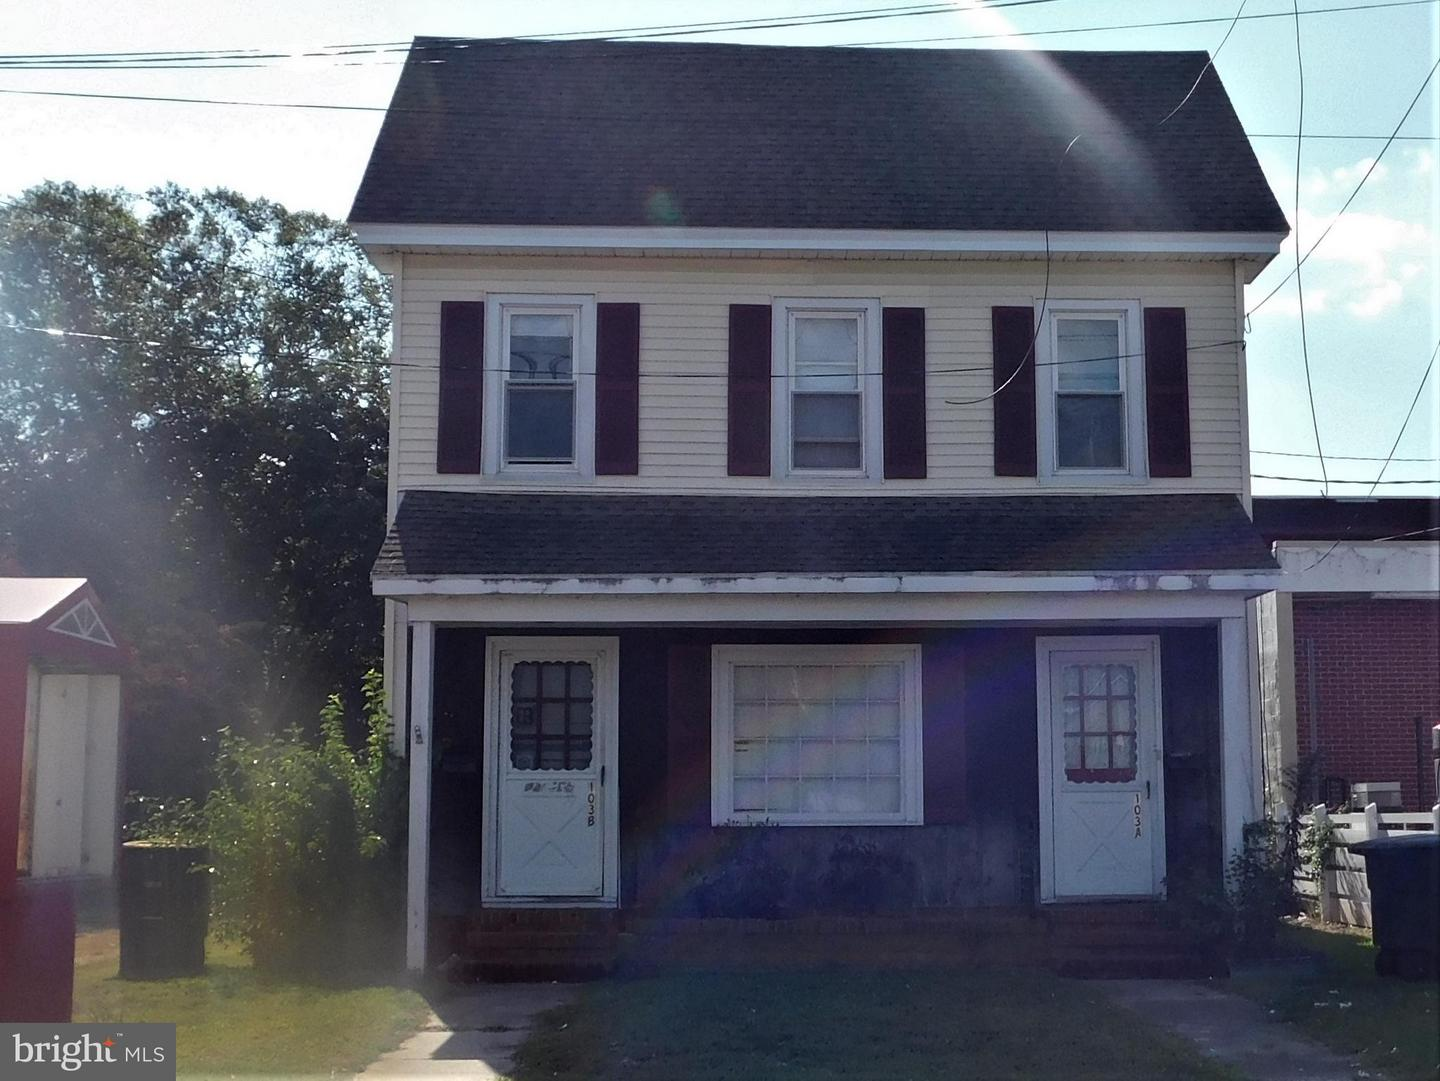 Commercial for Sale at 103 S Main St Federalsburg, Maryland 21632 United States